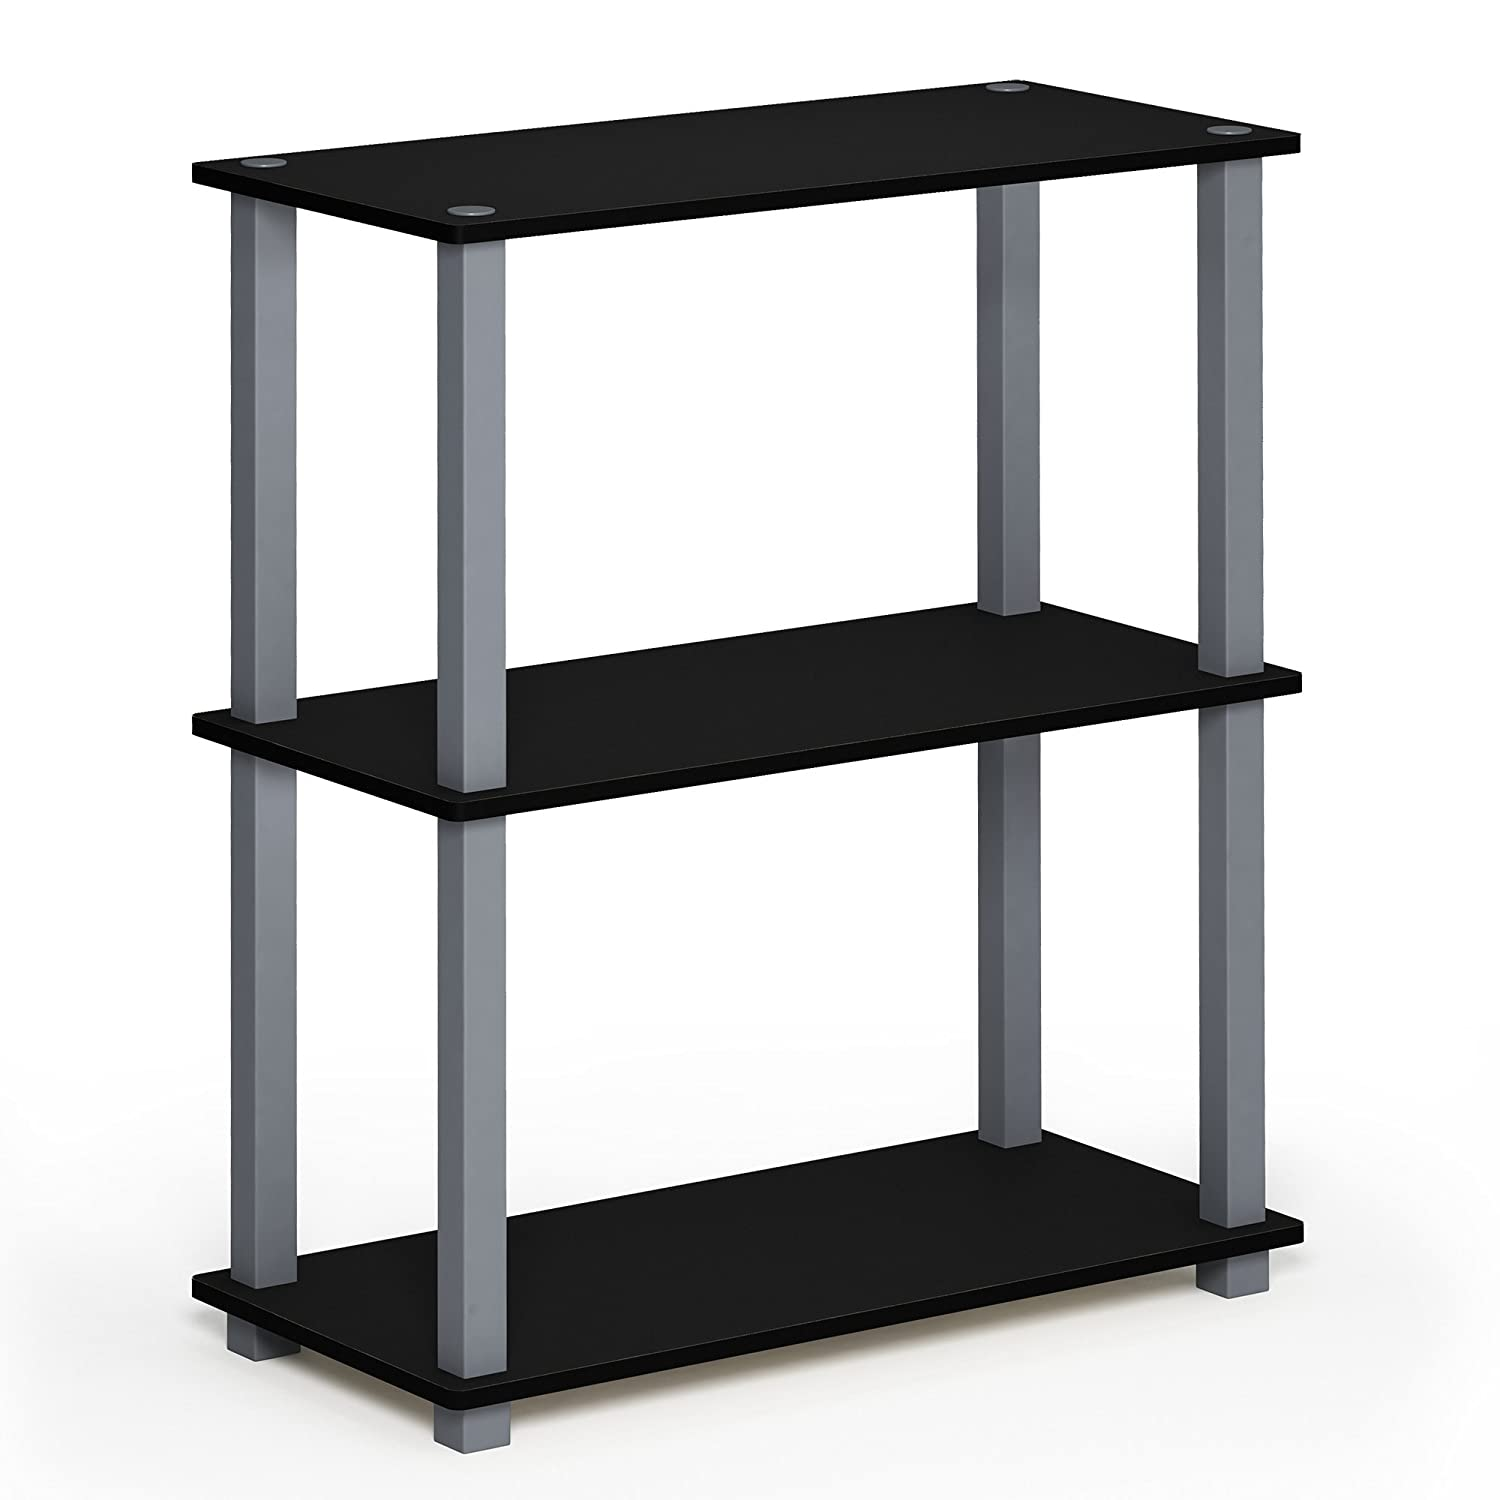 Black Grey 3-Tier Square Tubes Furinno 17091BE WH Turn-N-Tube 5-Tier Compact Multipurpose Shelf, Single, Beech White